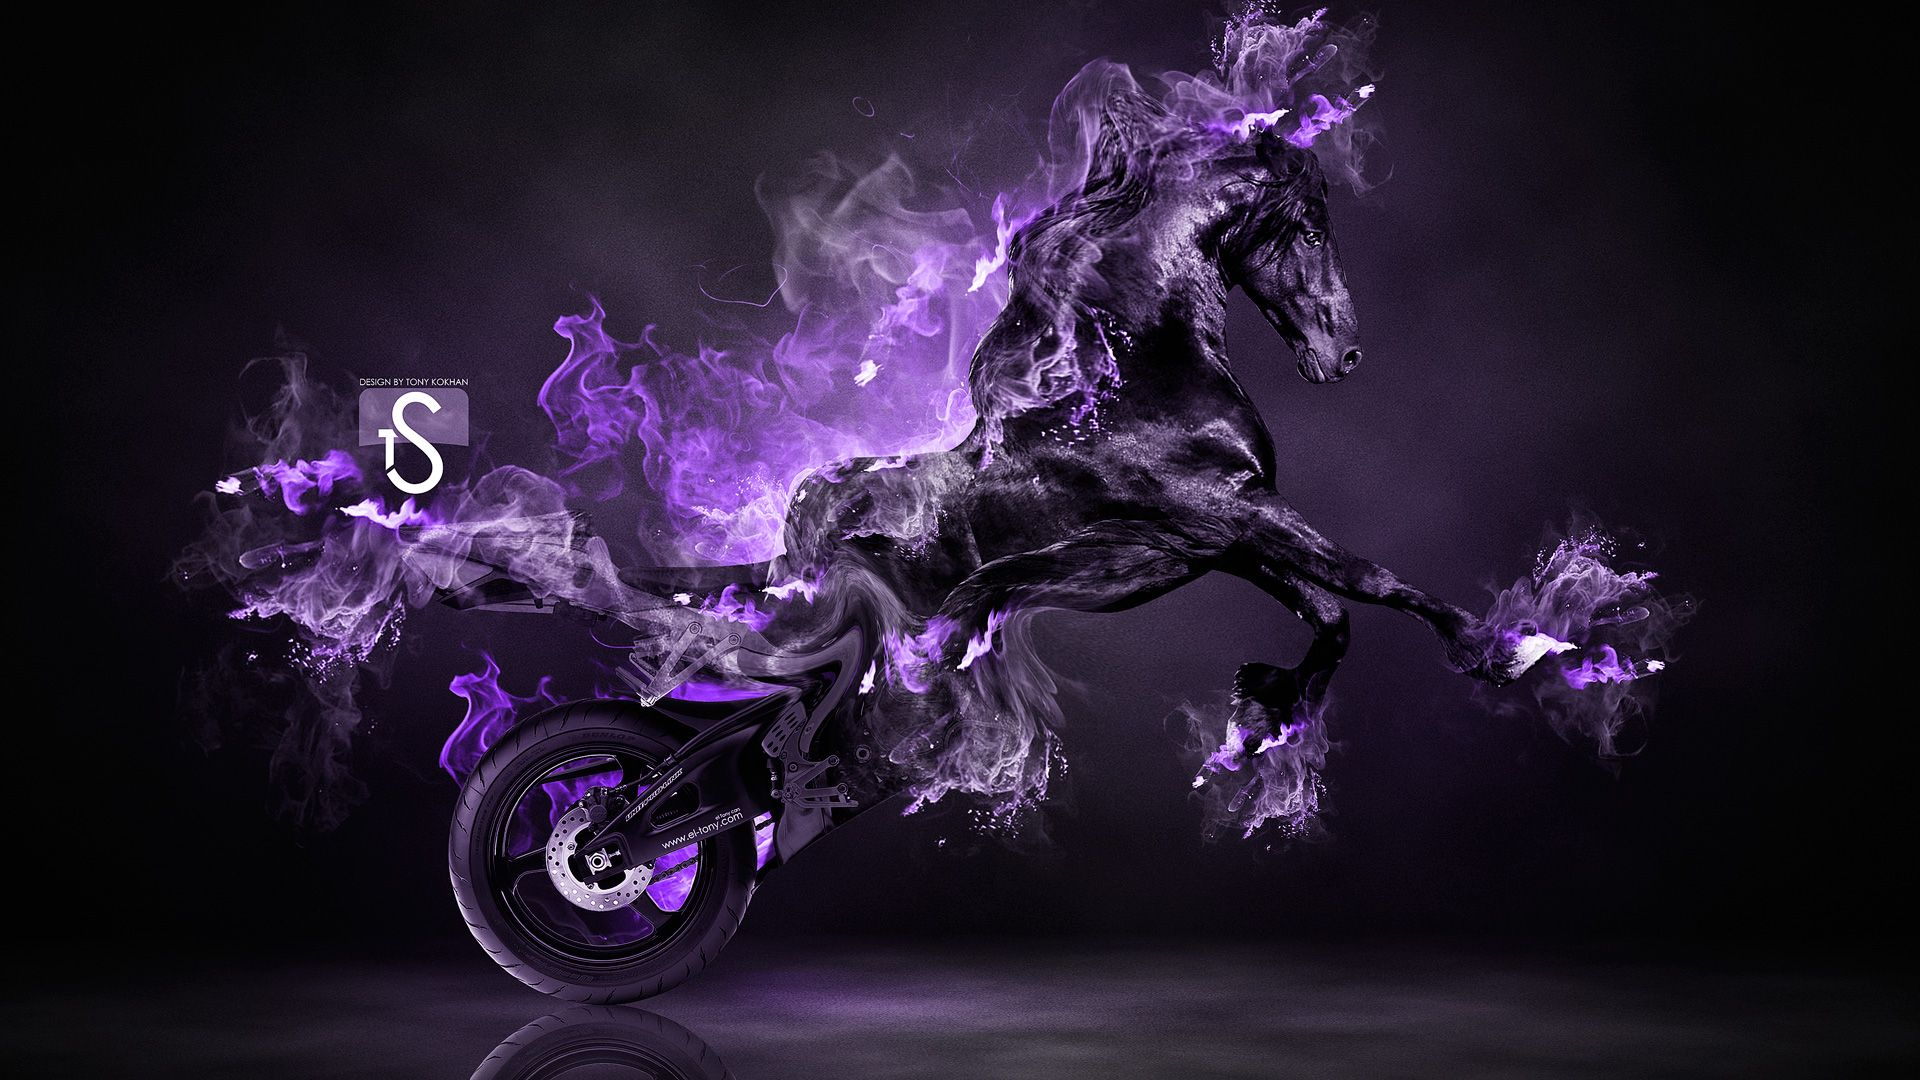 Neon Purple Flames | ... Power Fire 2014 Ducati Diavel Tiger Fire Fantasy  2013 Fantasy Moto